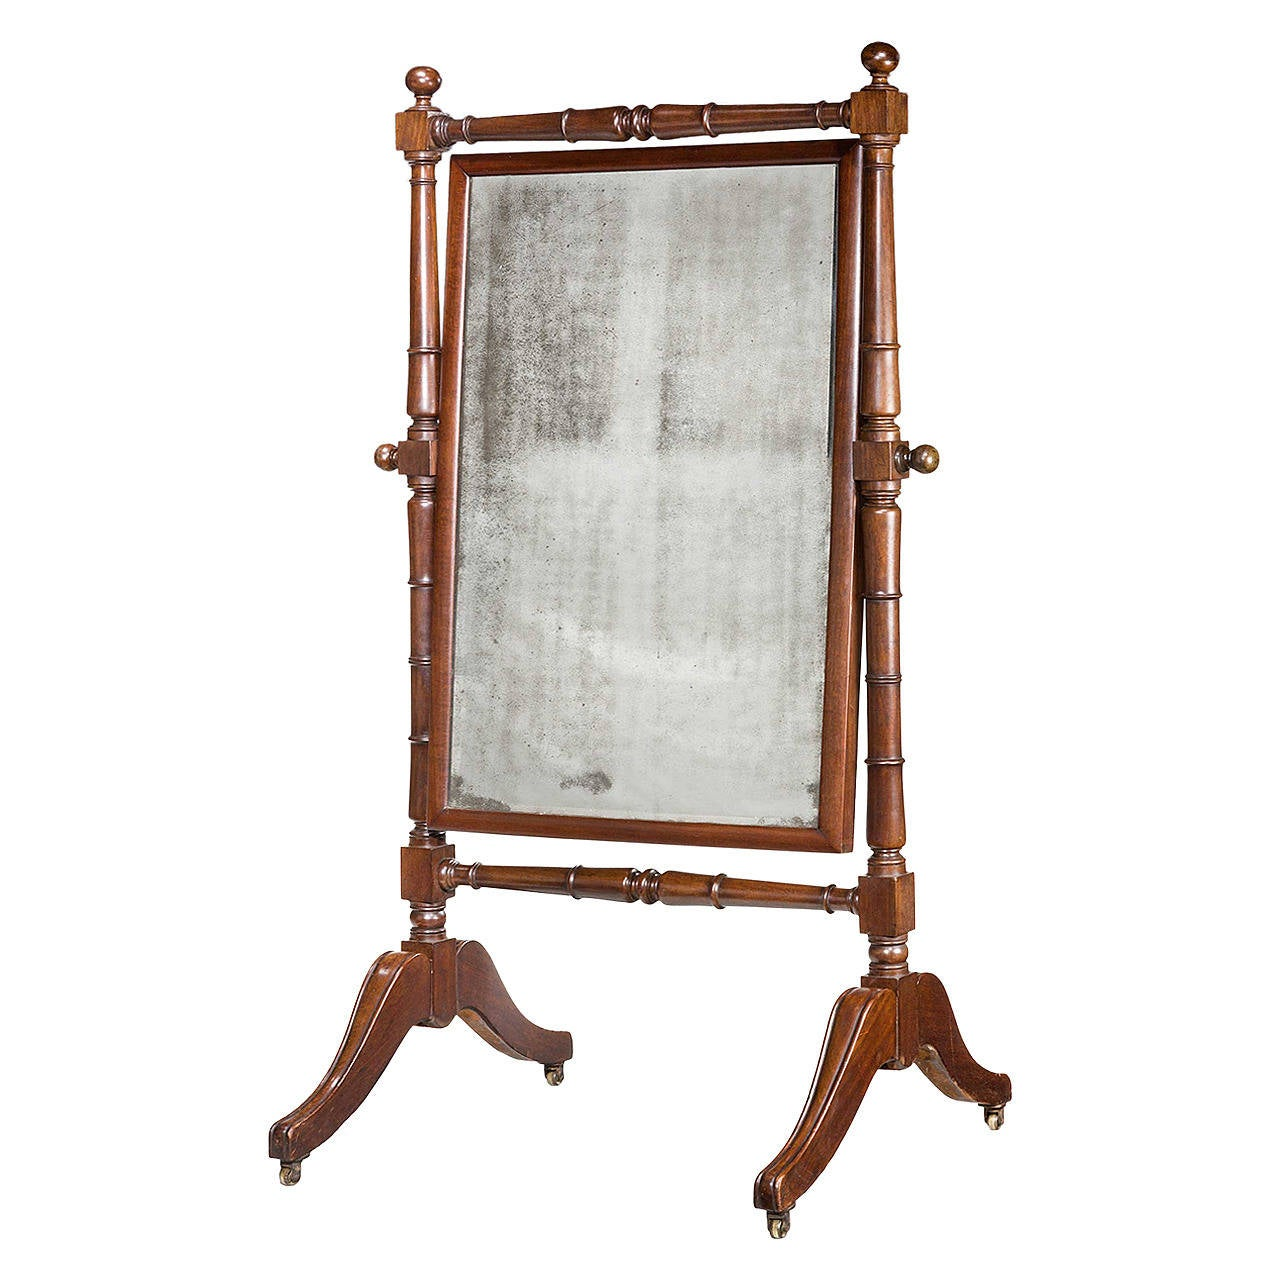 Regency period mahogany cheval mirror for sale at 1stdibs for Cheval mirror